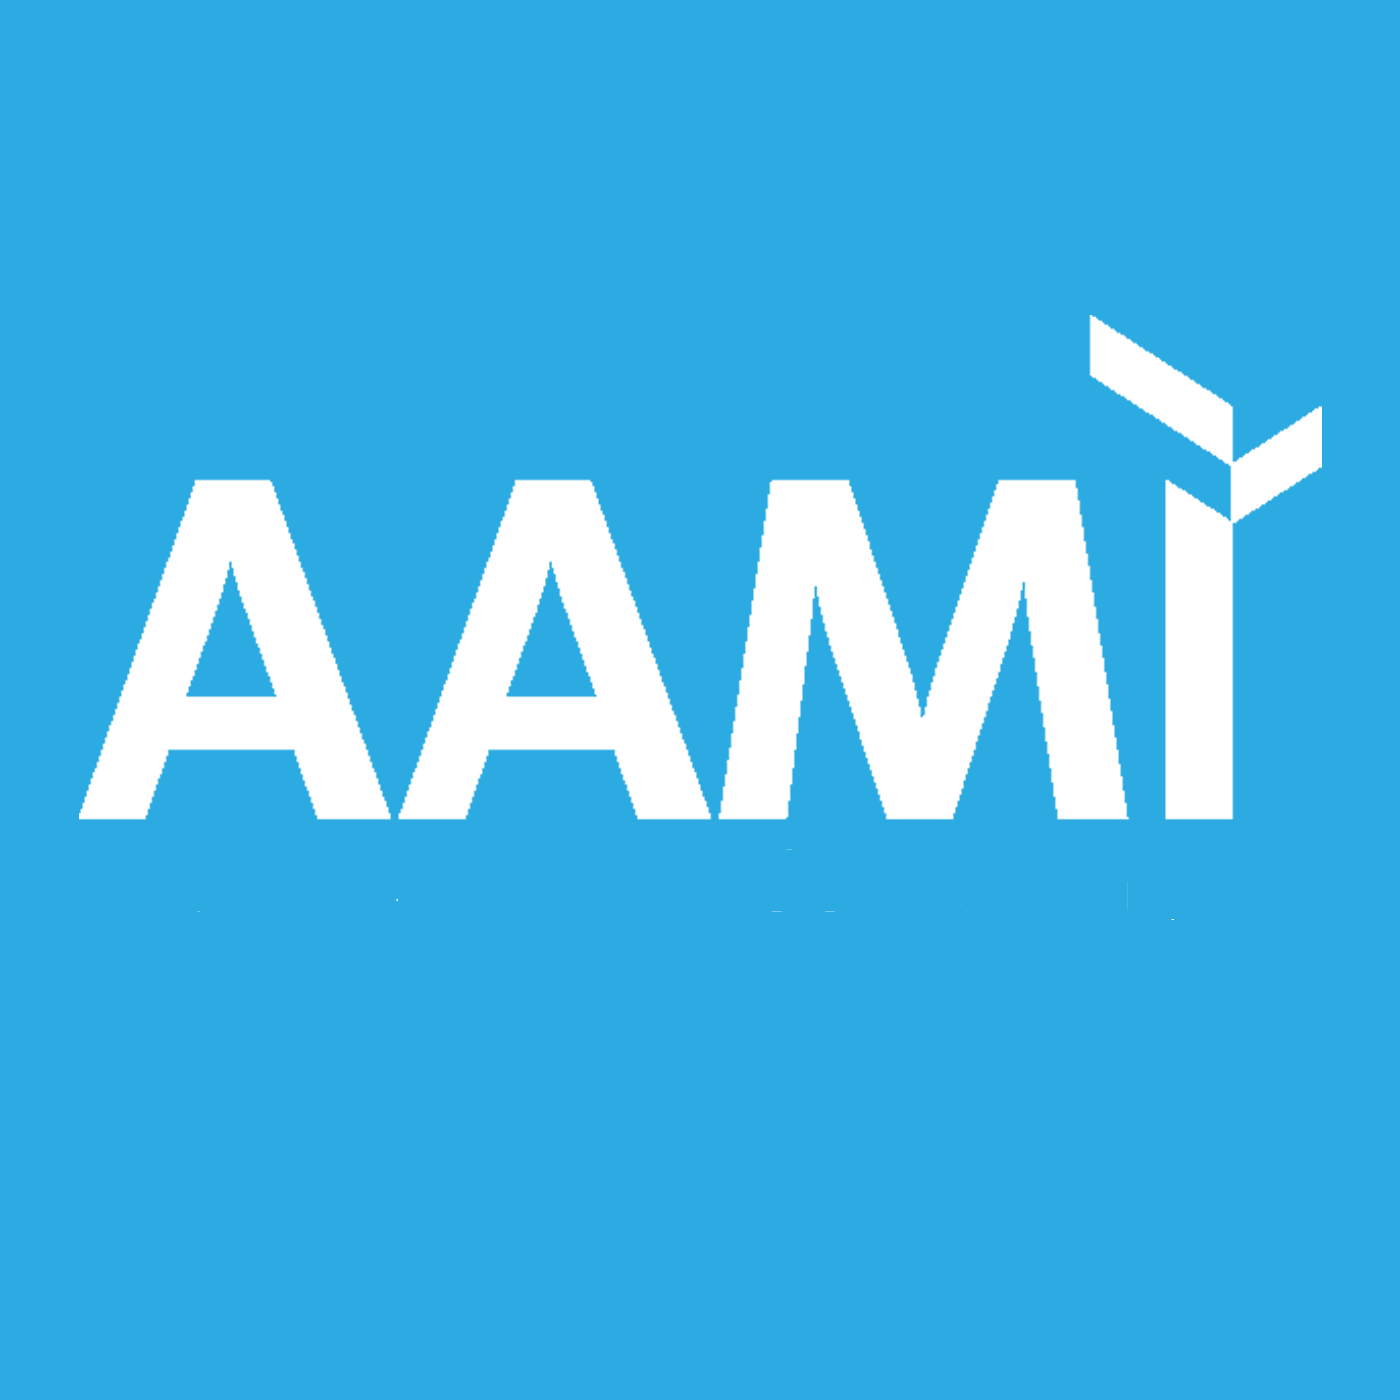 The Association for the Advancement of  Medical Instrumentation Podcast - AAMI show art